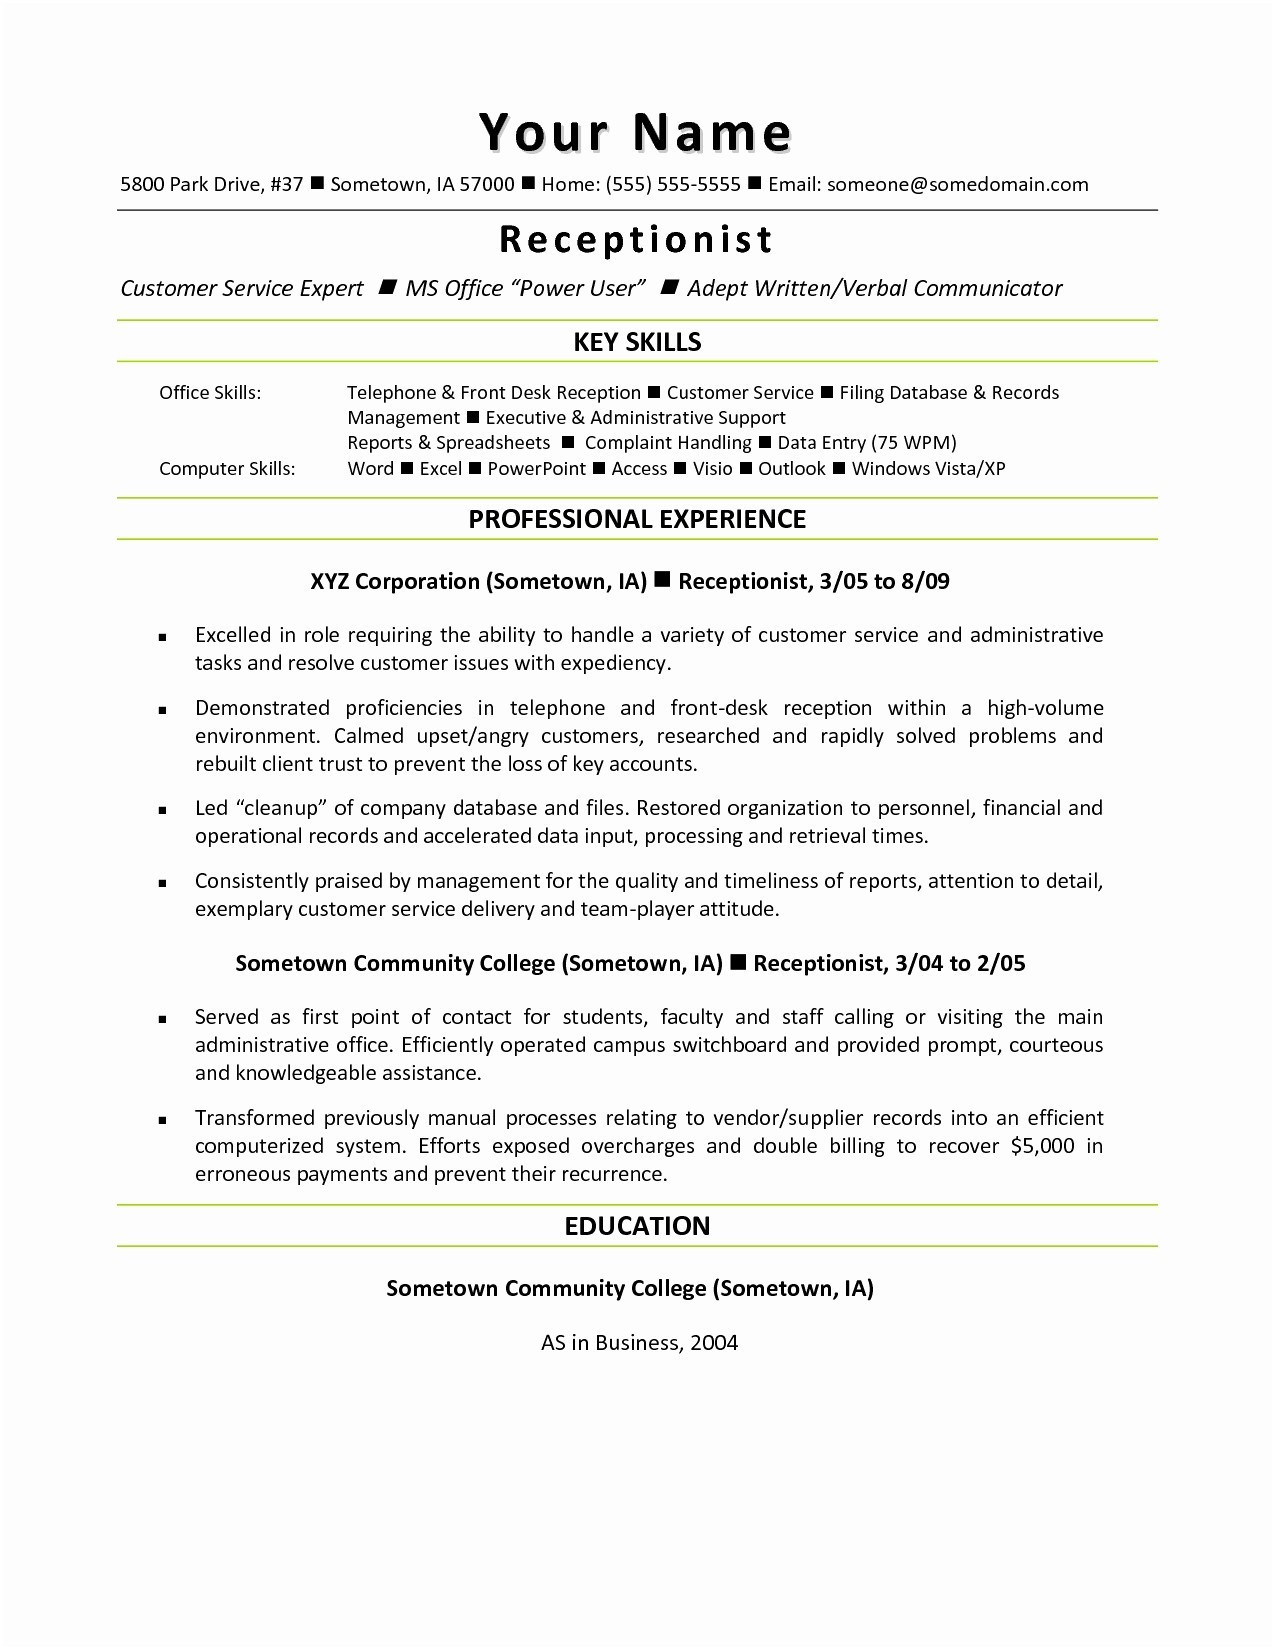 cover letter template microsoft word 2010 example-Resume Microsoft Word Fresh Resume Mail Format Sample Fresh Beautiful Od Consultant Cover Letter Information 19-r